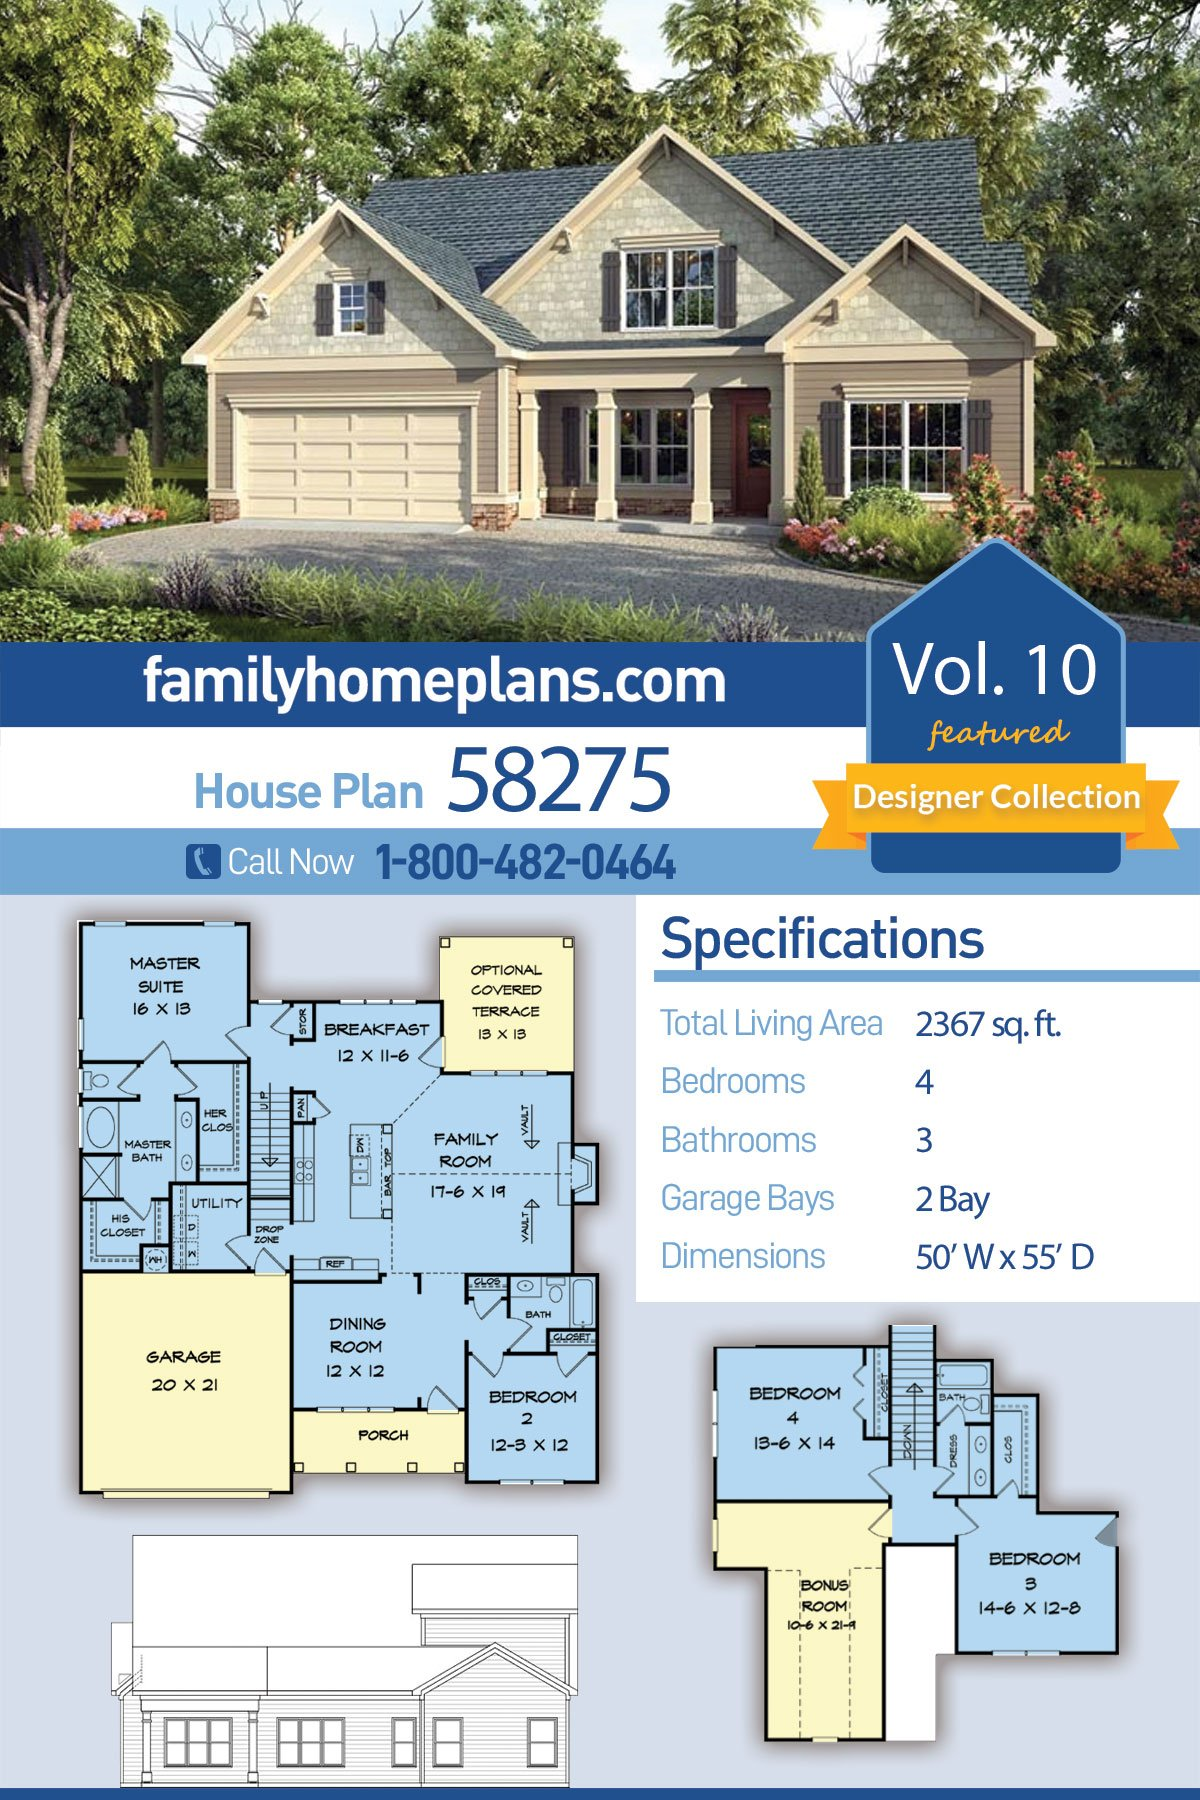 Craftsman, Traditional House Plan 58275 with 4 Beds, 3 Baths, 2 Car Garage